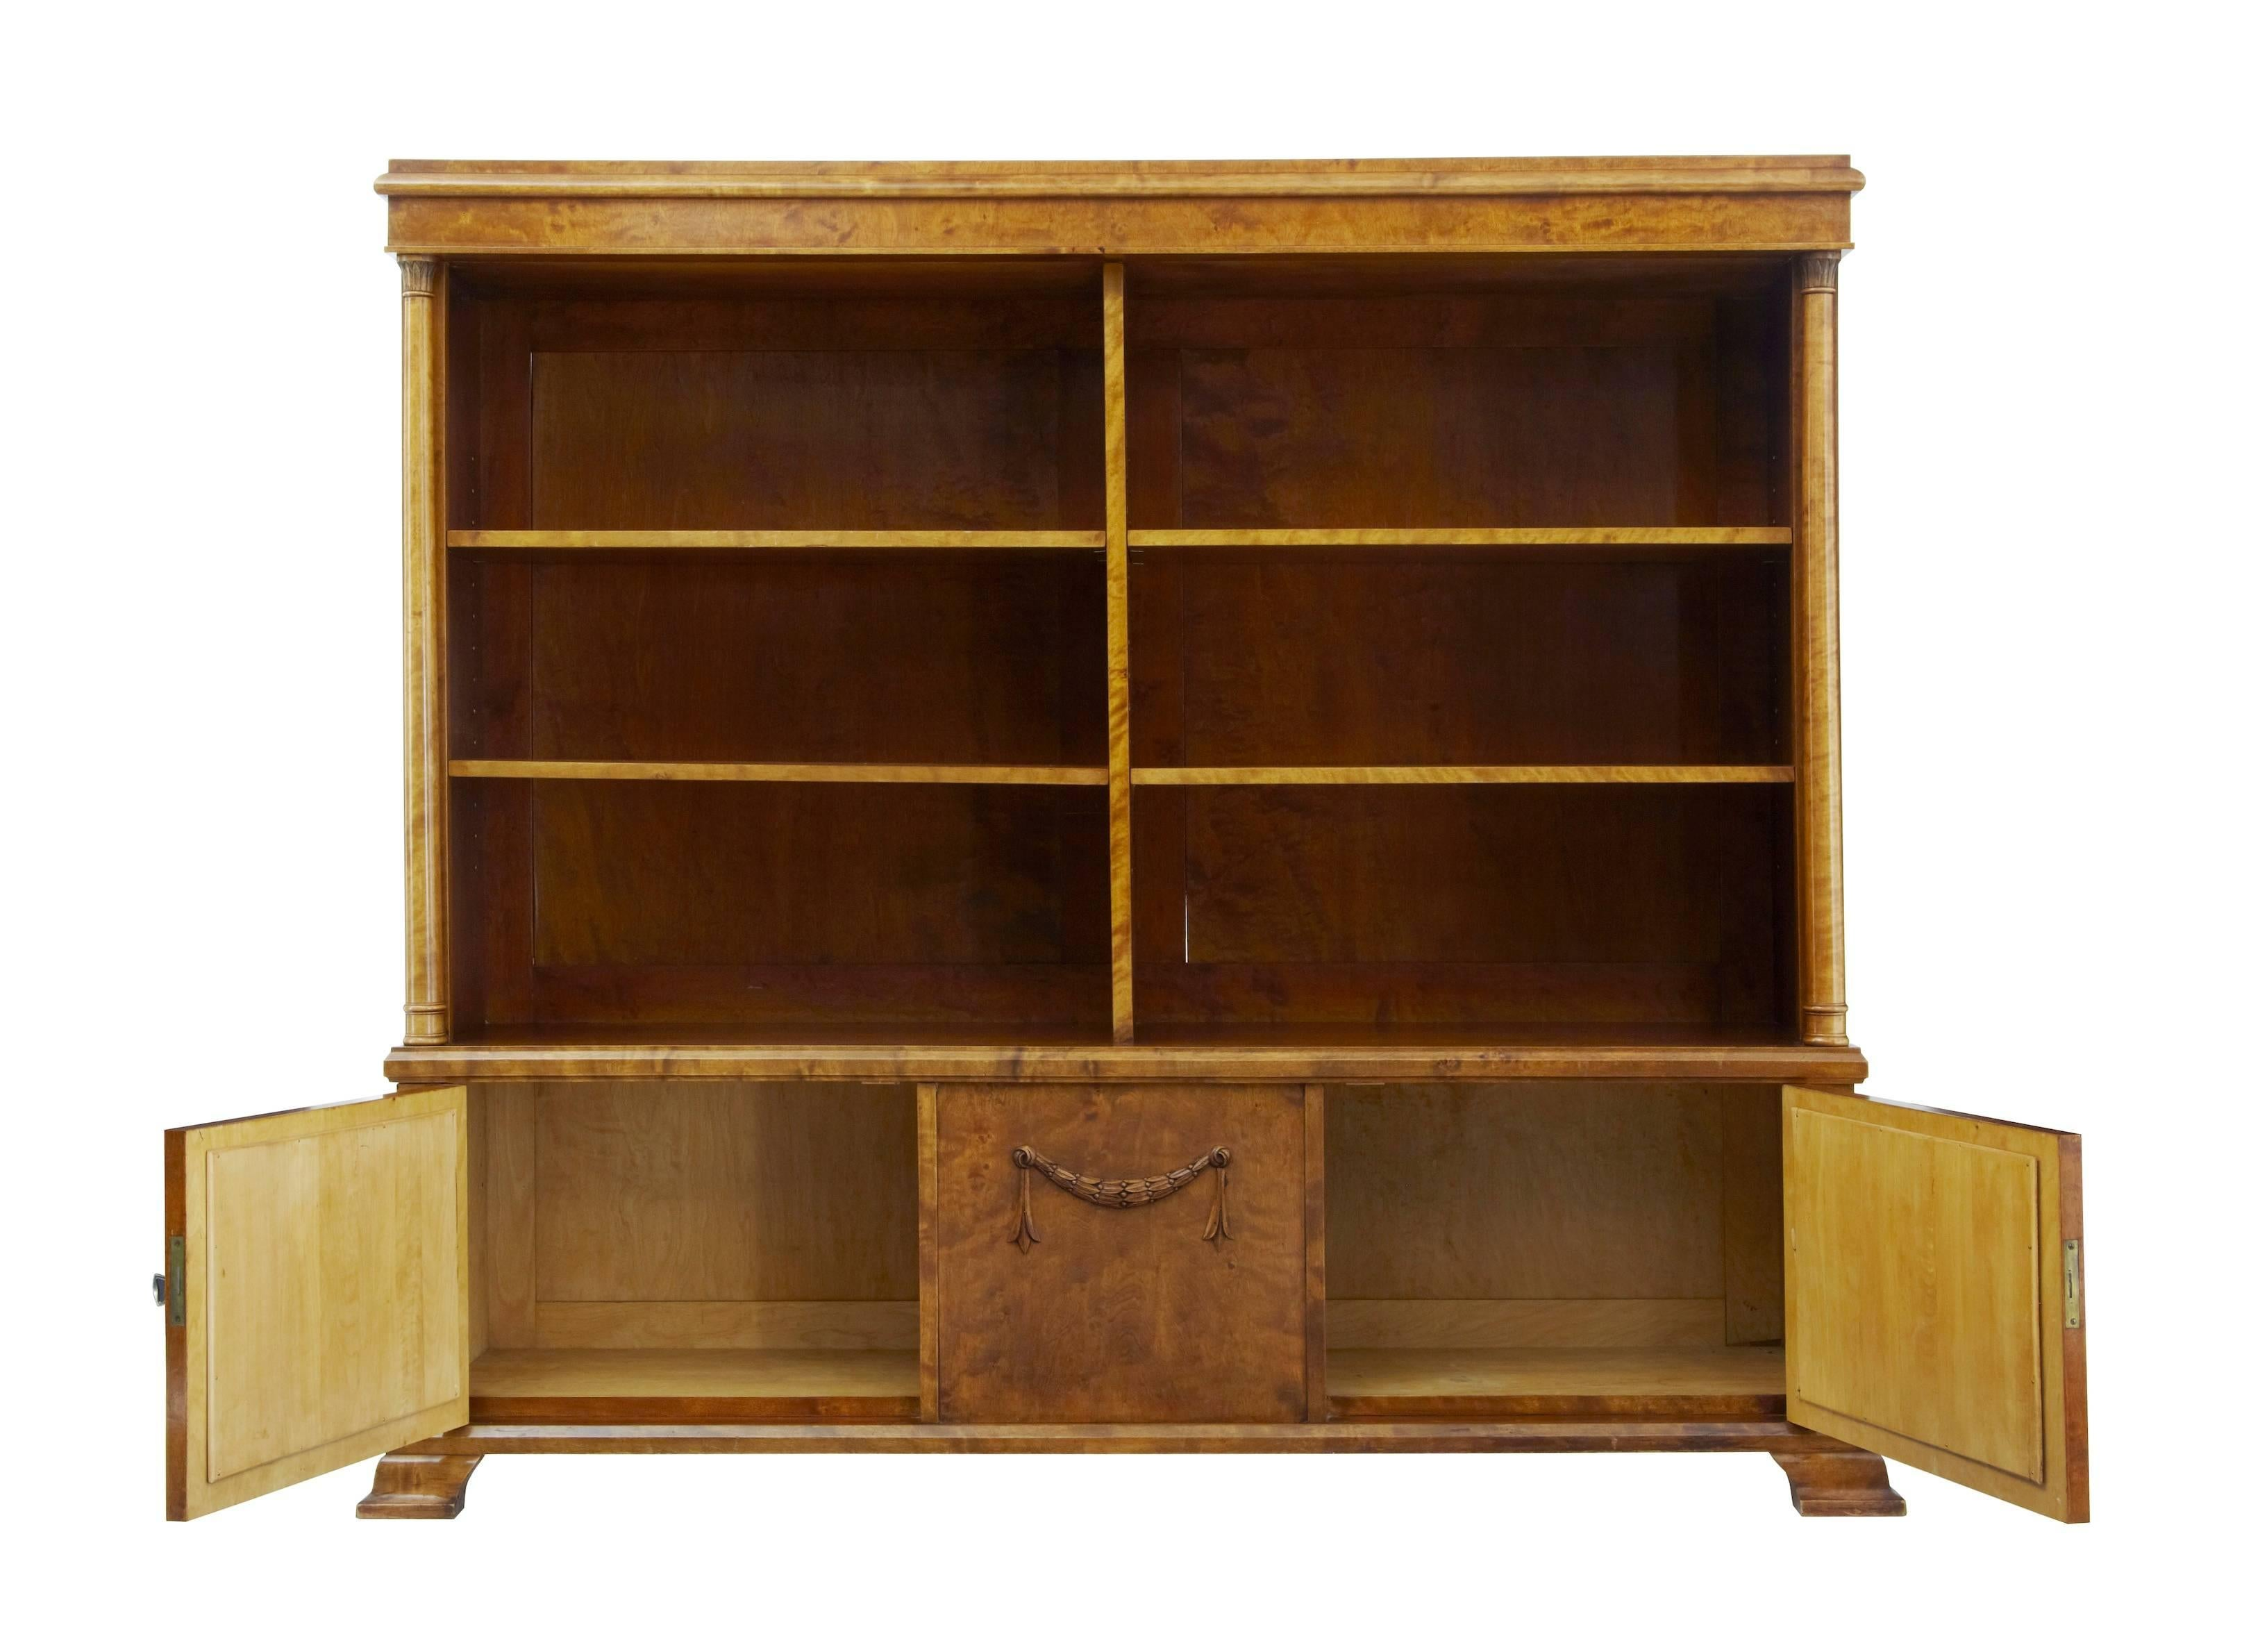 Antiques Early 20th Century Empire Revival Birch Bookcase Cabinet